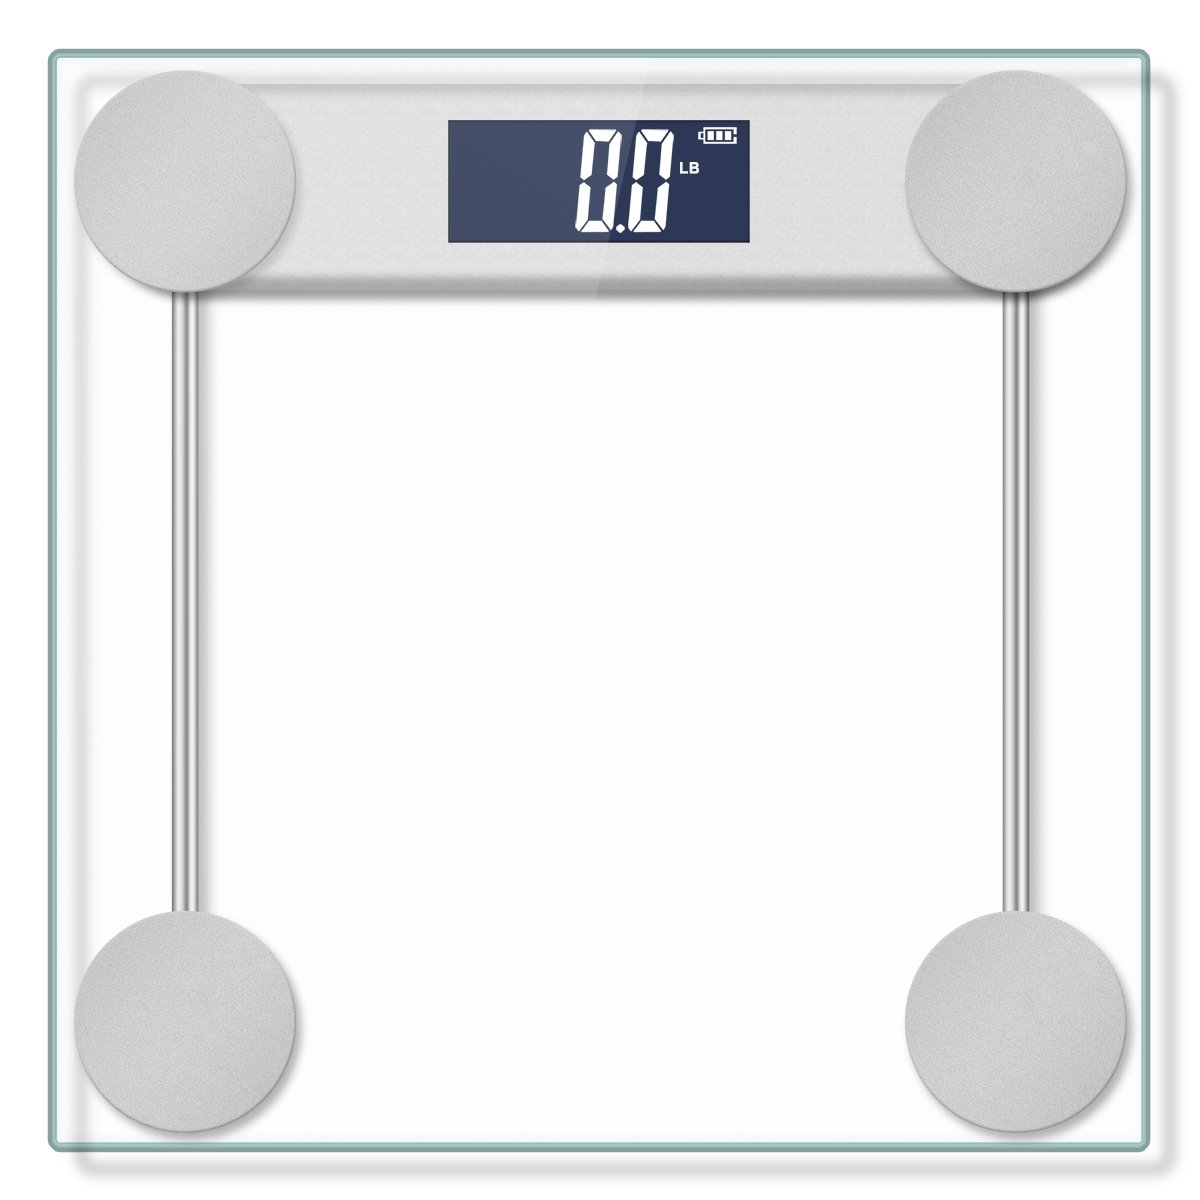 Electronic Bathroom Scale with Tempered Right Angle Glass Balance Platform and Advanced Step-On Technology, Digital Weight Scale has Large Easy Read